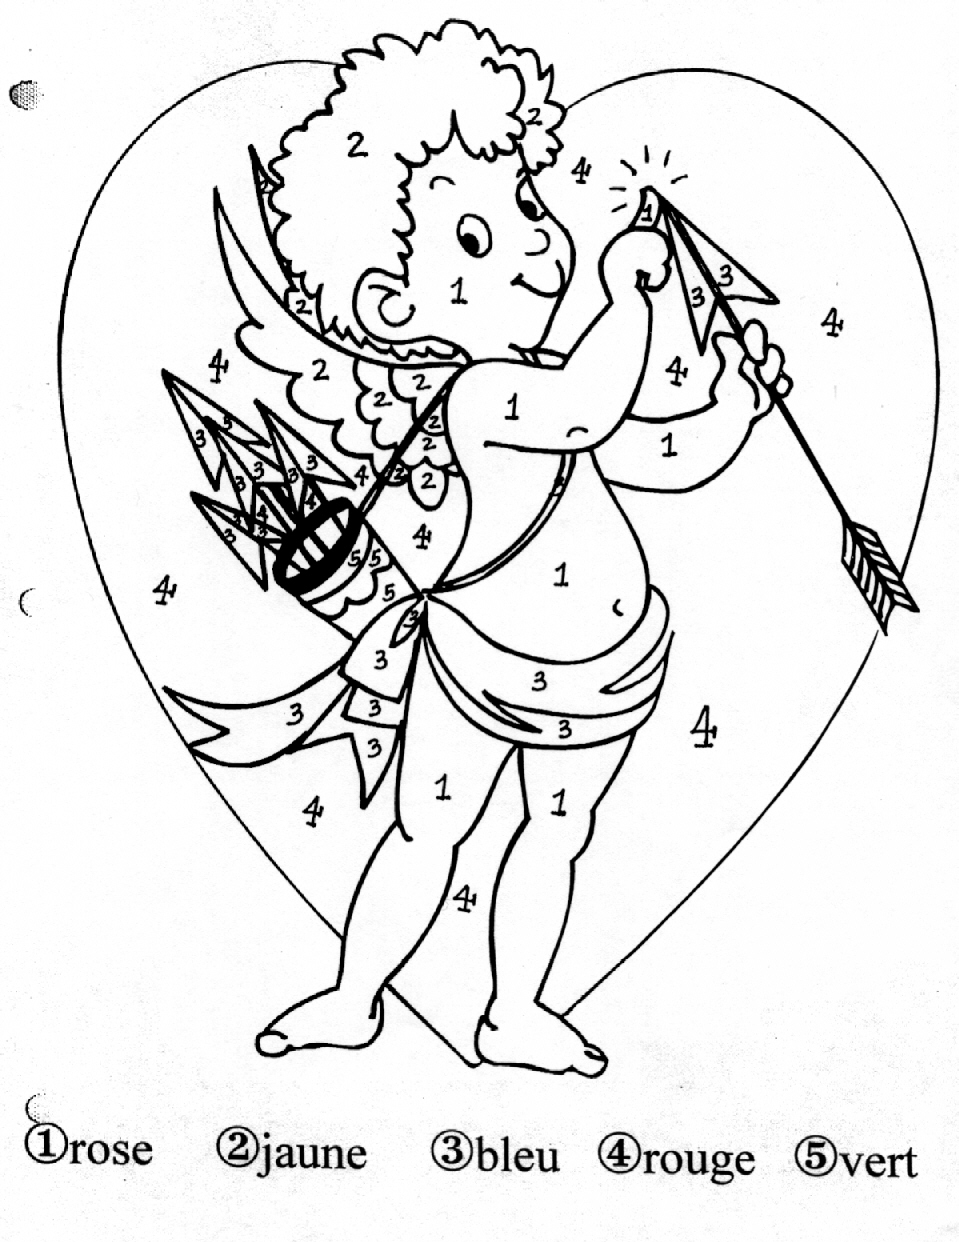 Lovely coloriage st valentin luxe coloriage st valentin dessin coloriage 2019 - Coloriage st valentin ...